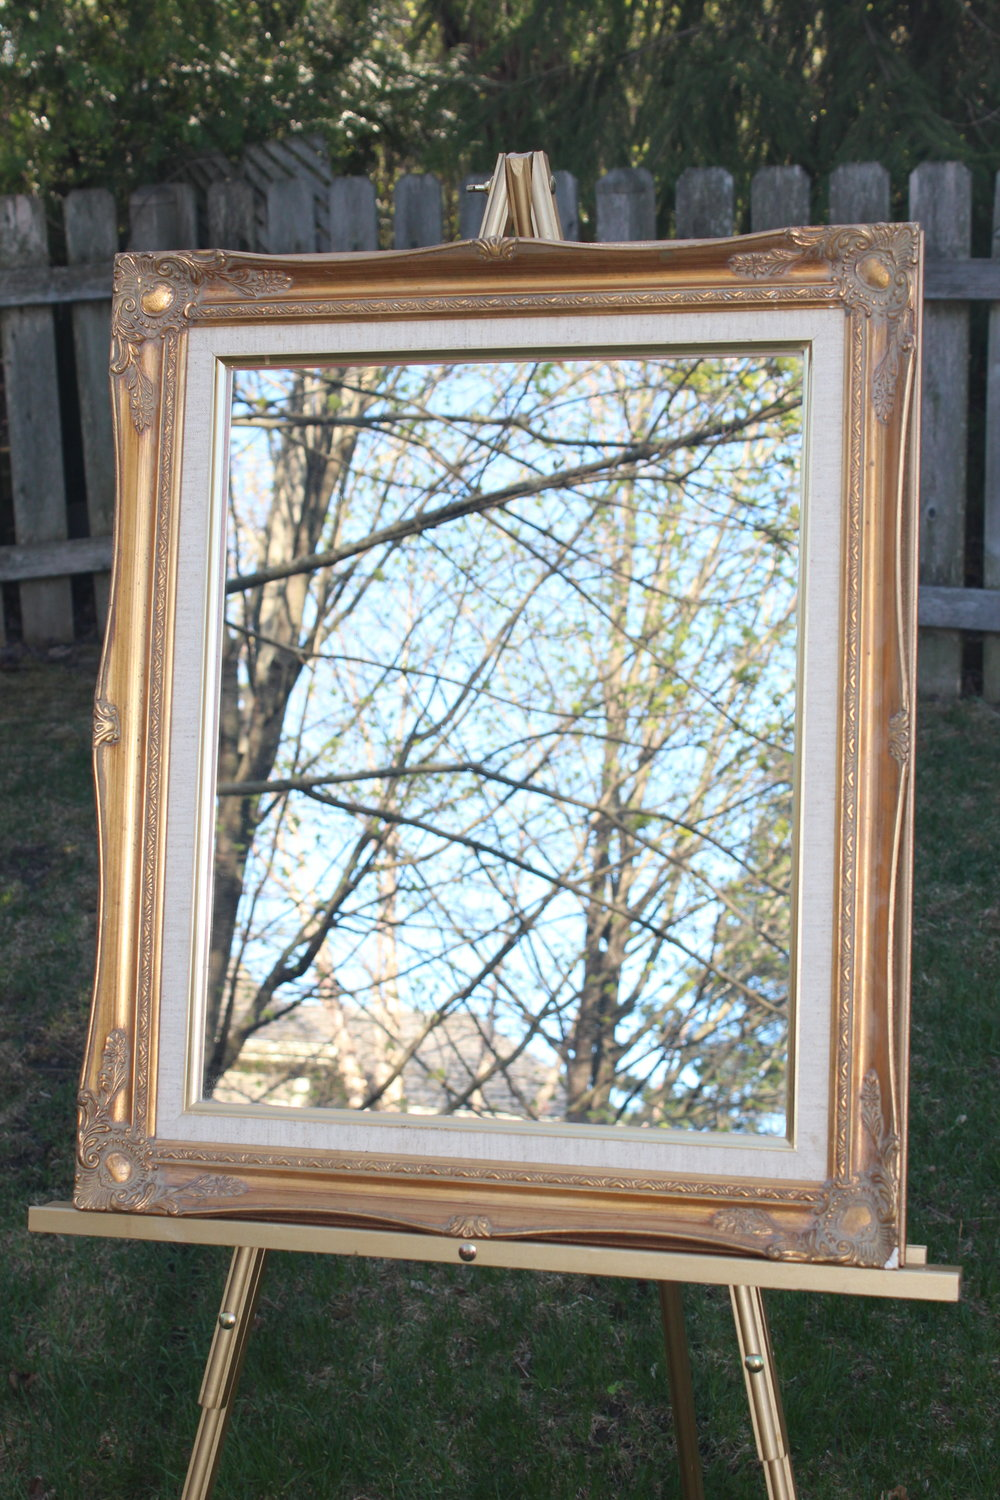 Gold Mirror 2 -1.5ft W x 2ft H